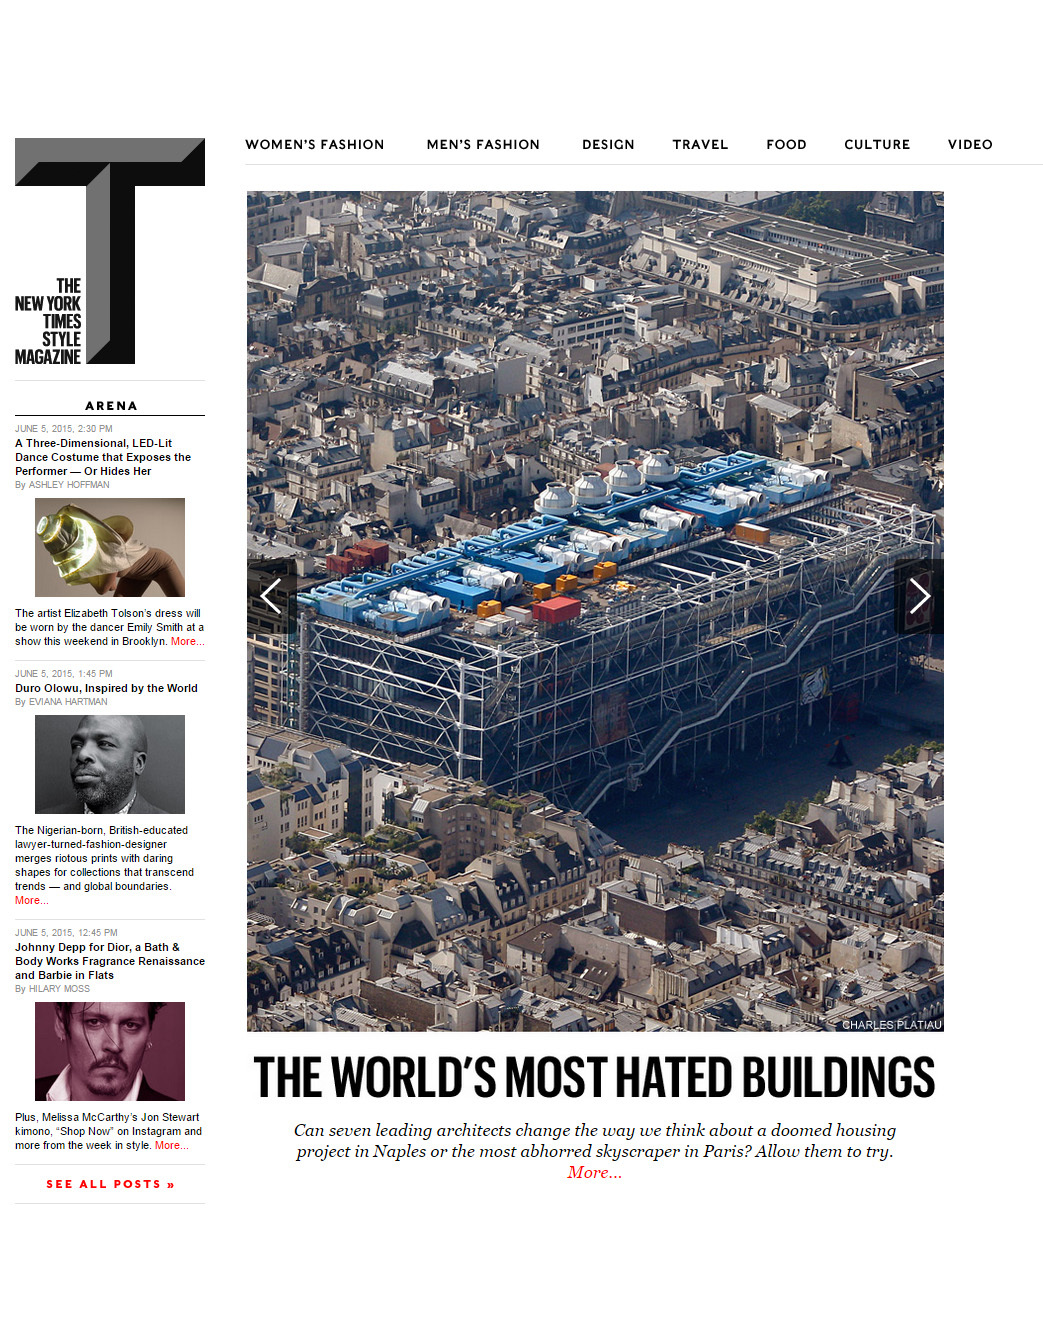 Seven Leading Architects Defend The World S Most Hated Buildings New York Times T Magazine En